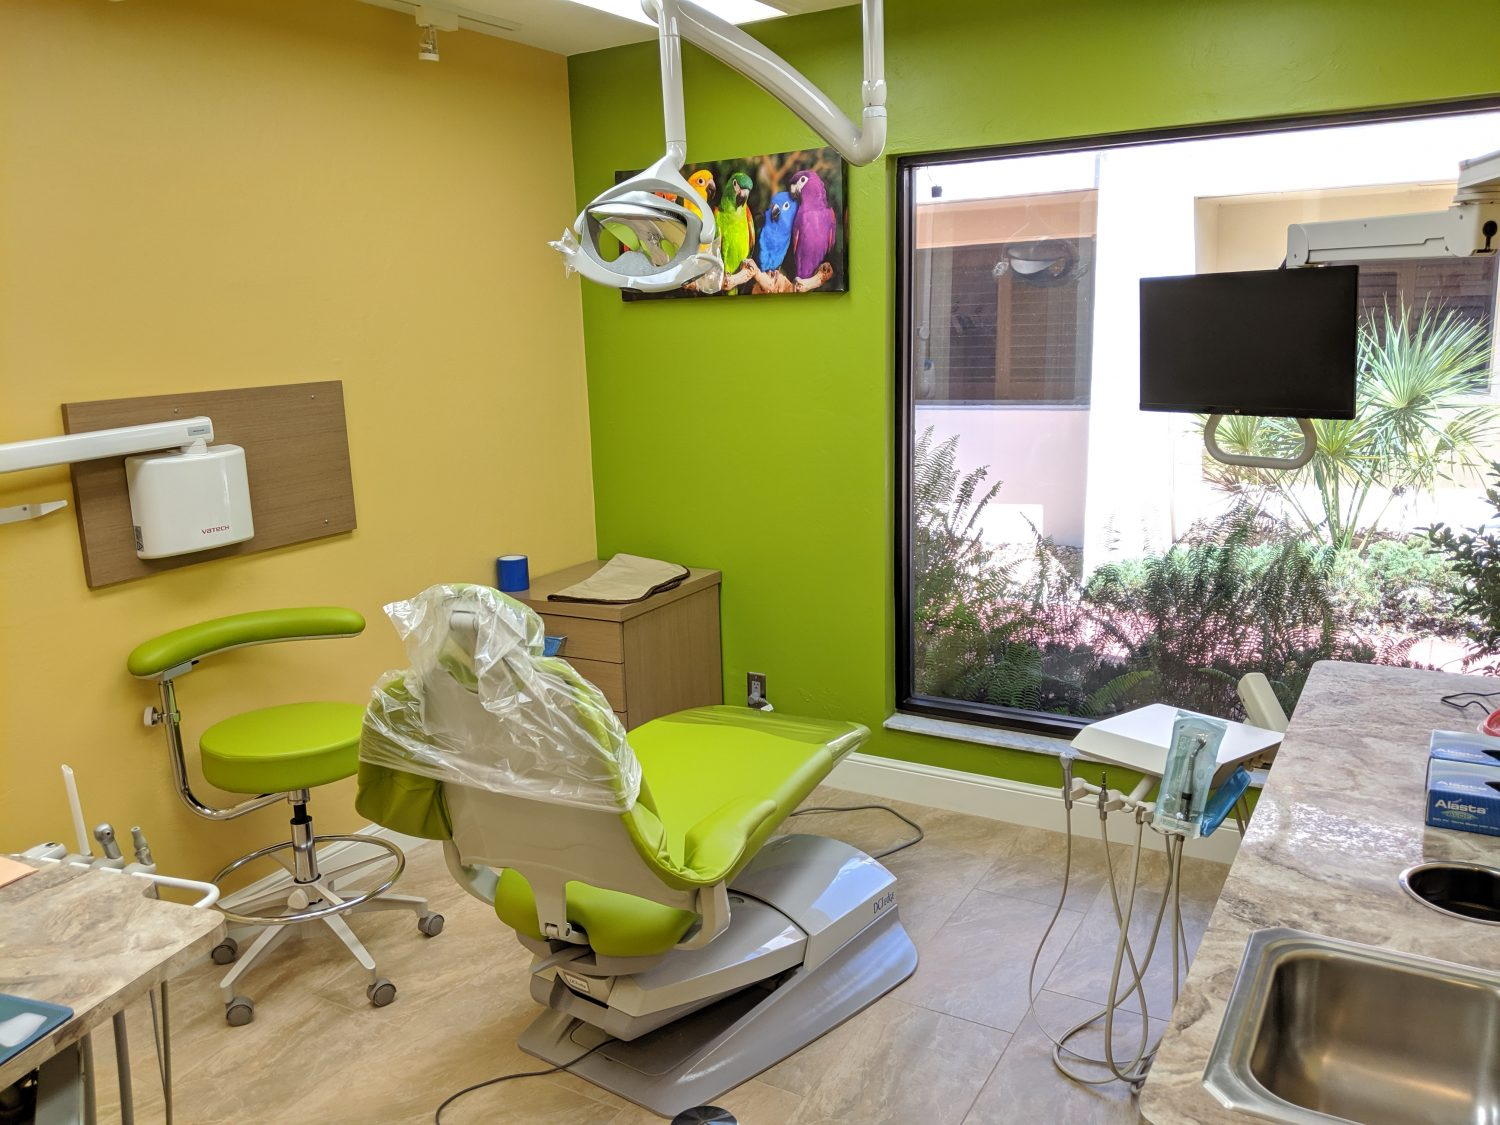 florida-dental-services-kiwan